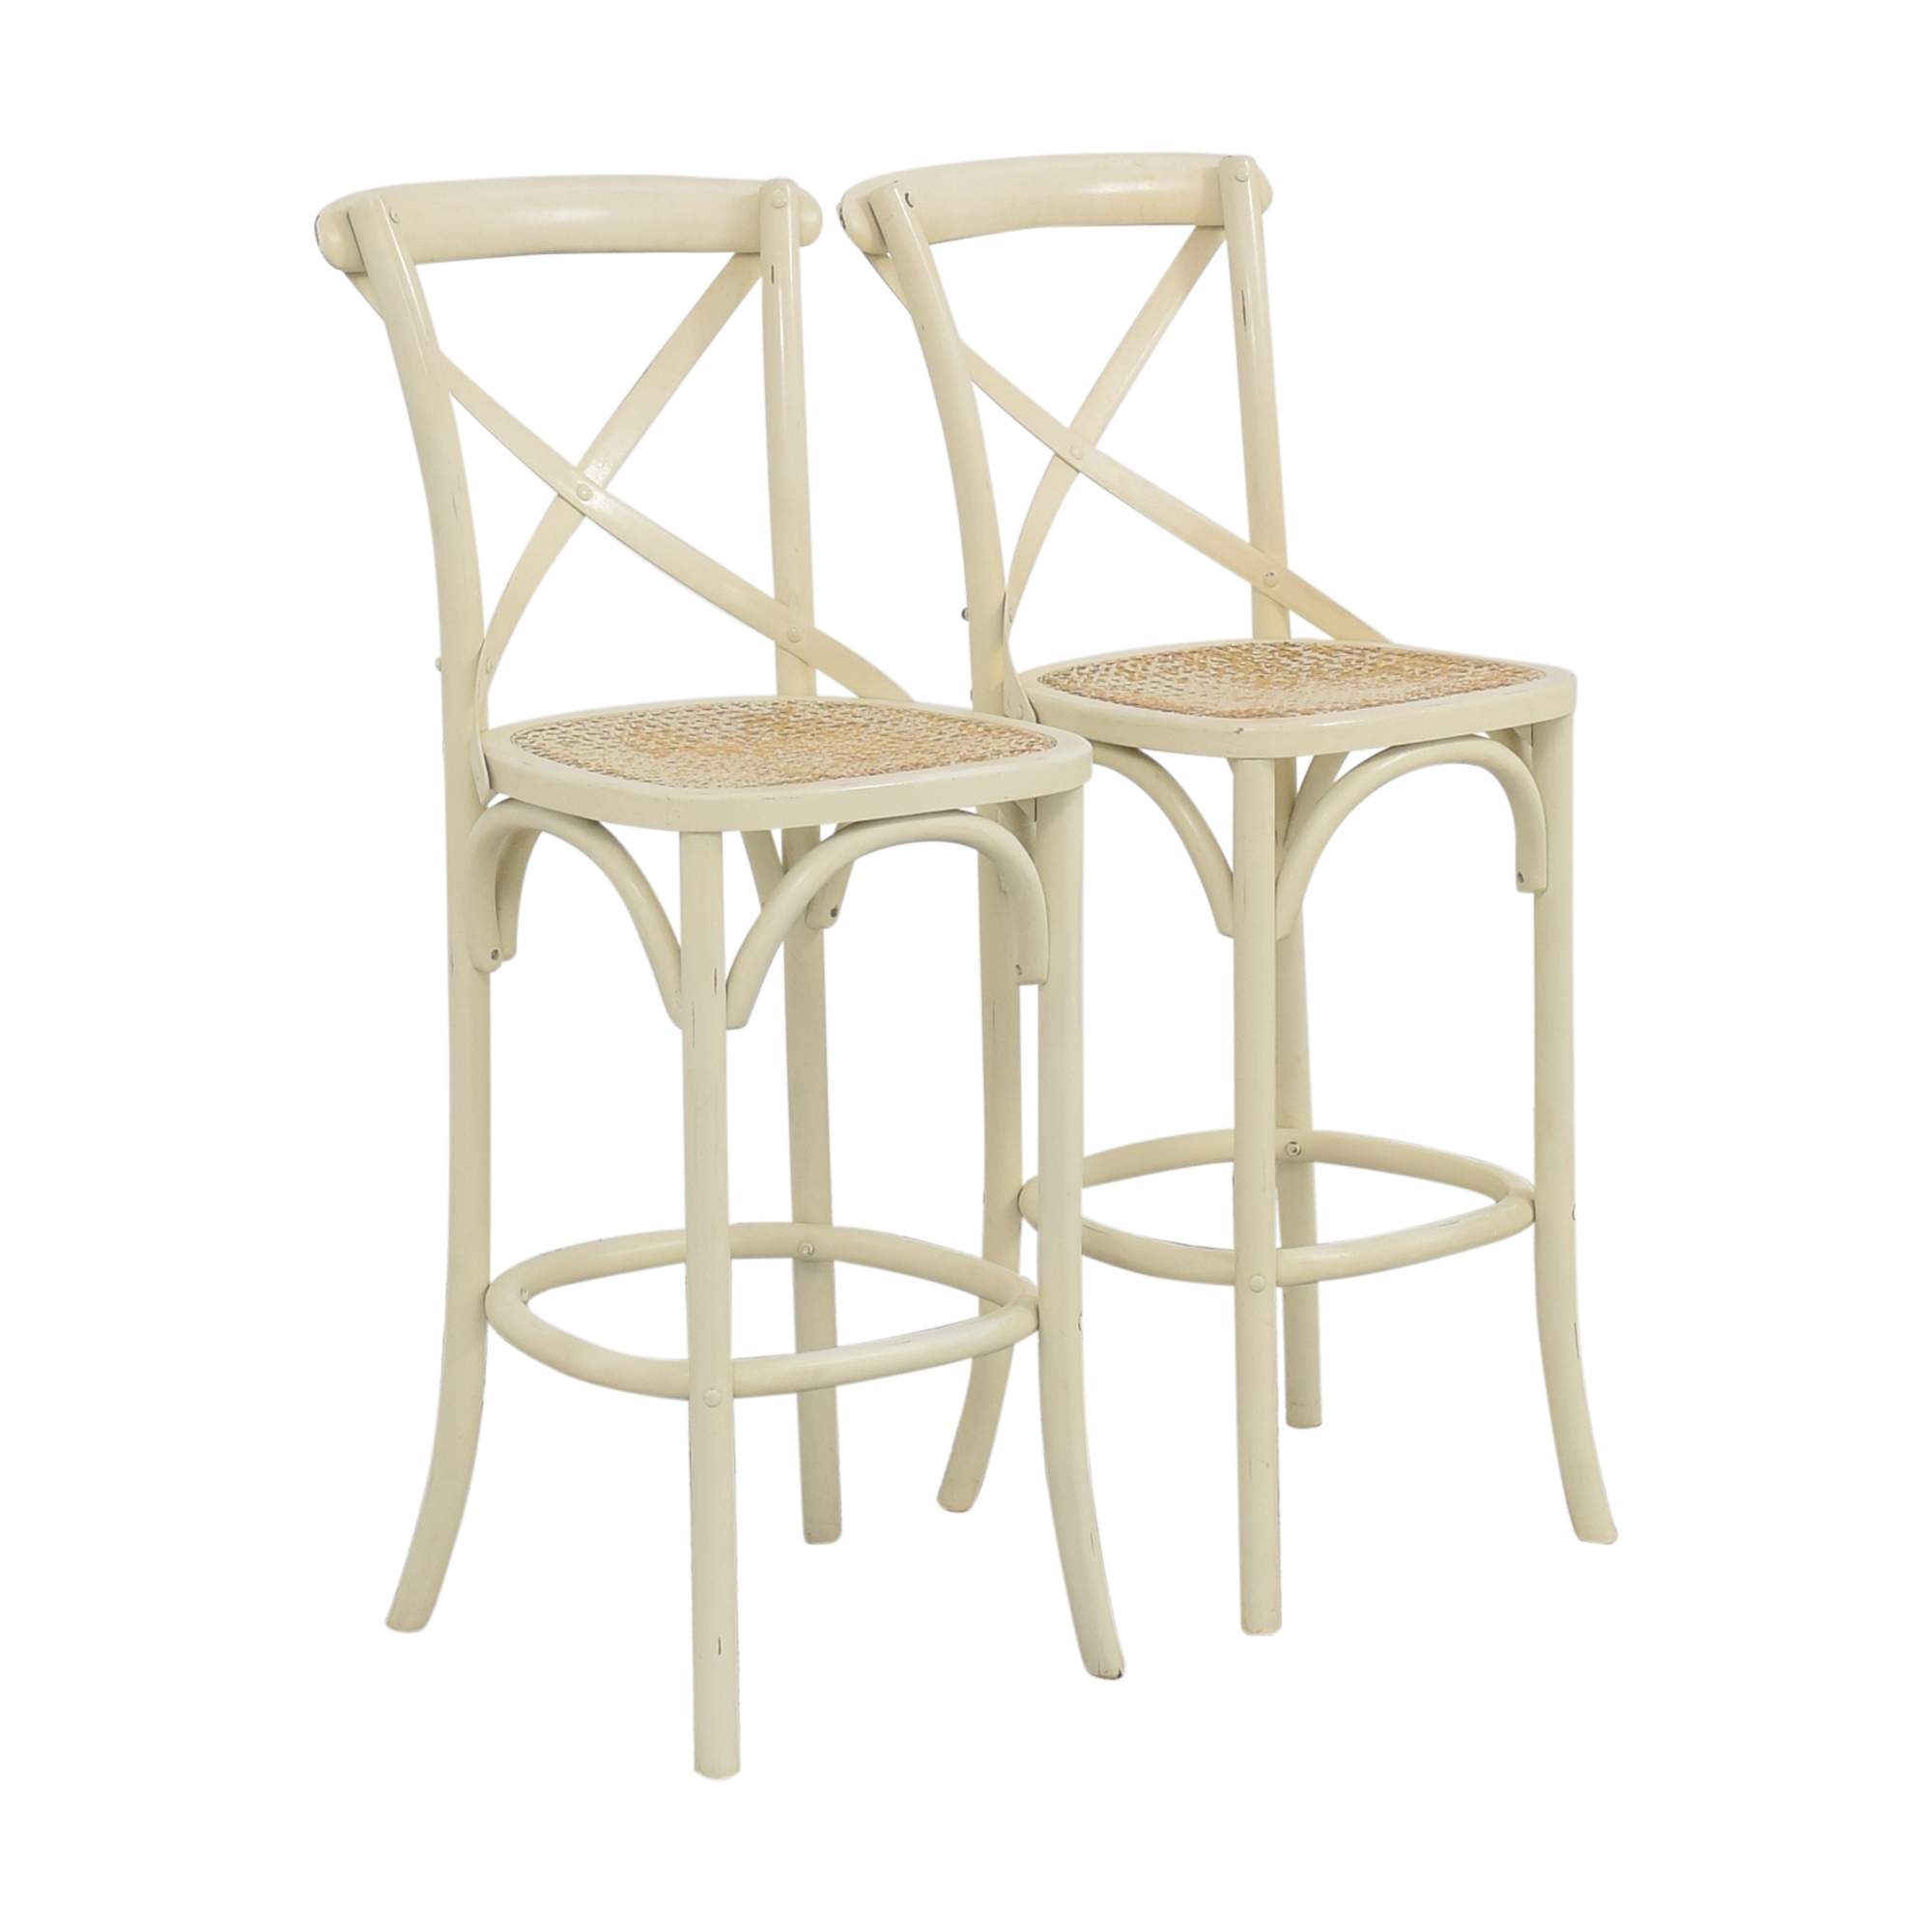 Restoration Hardware Restoration Hardware Hightop Chairs Off White